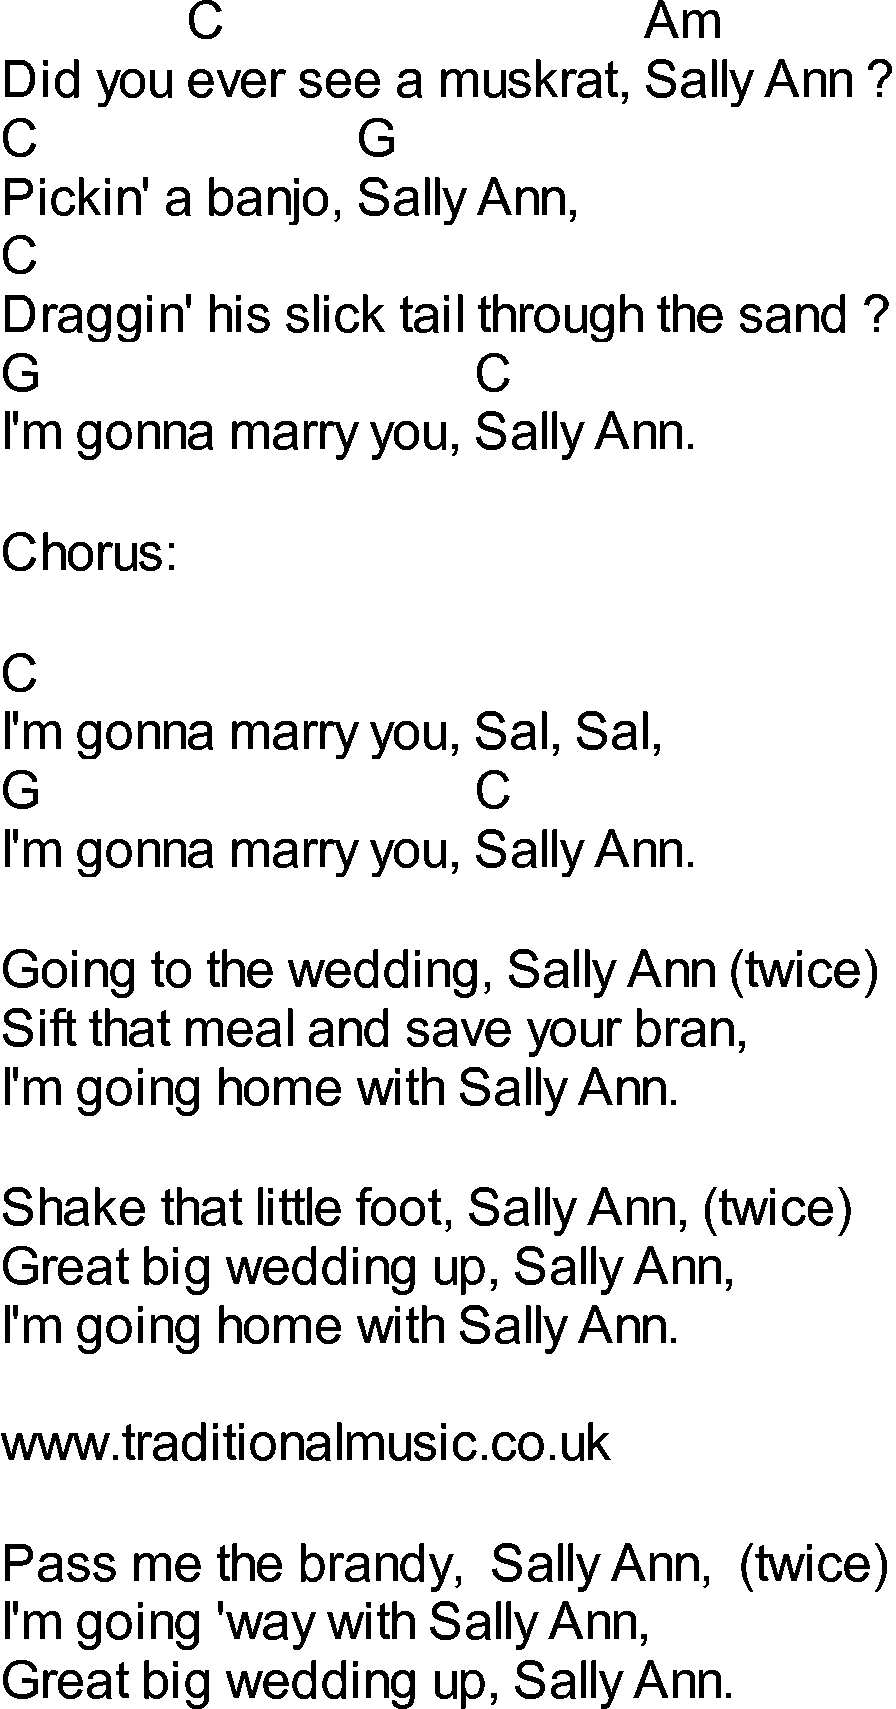 bluegrass songs with chords sally ann